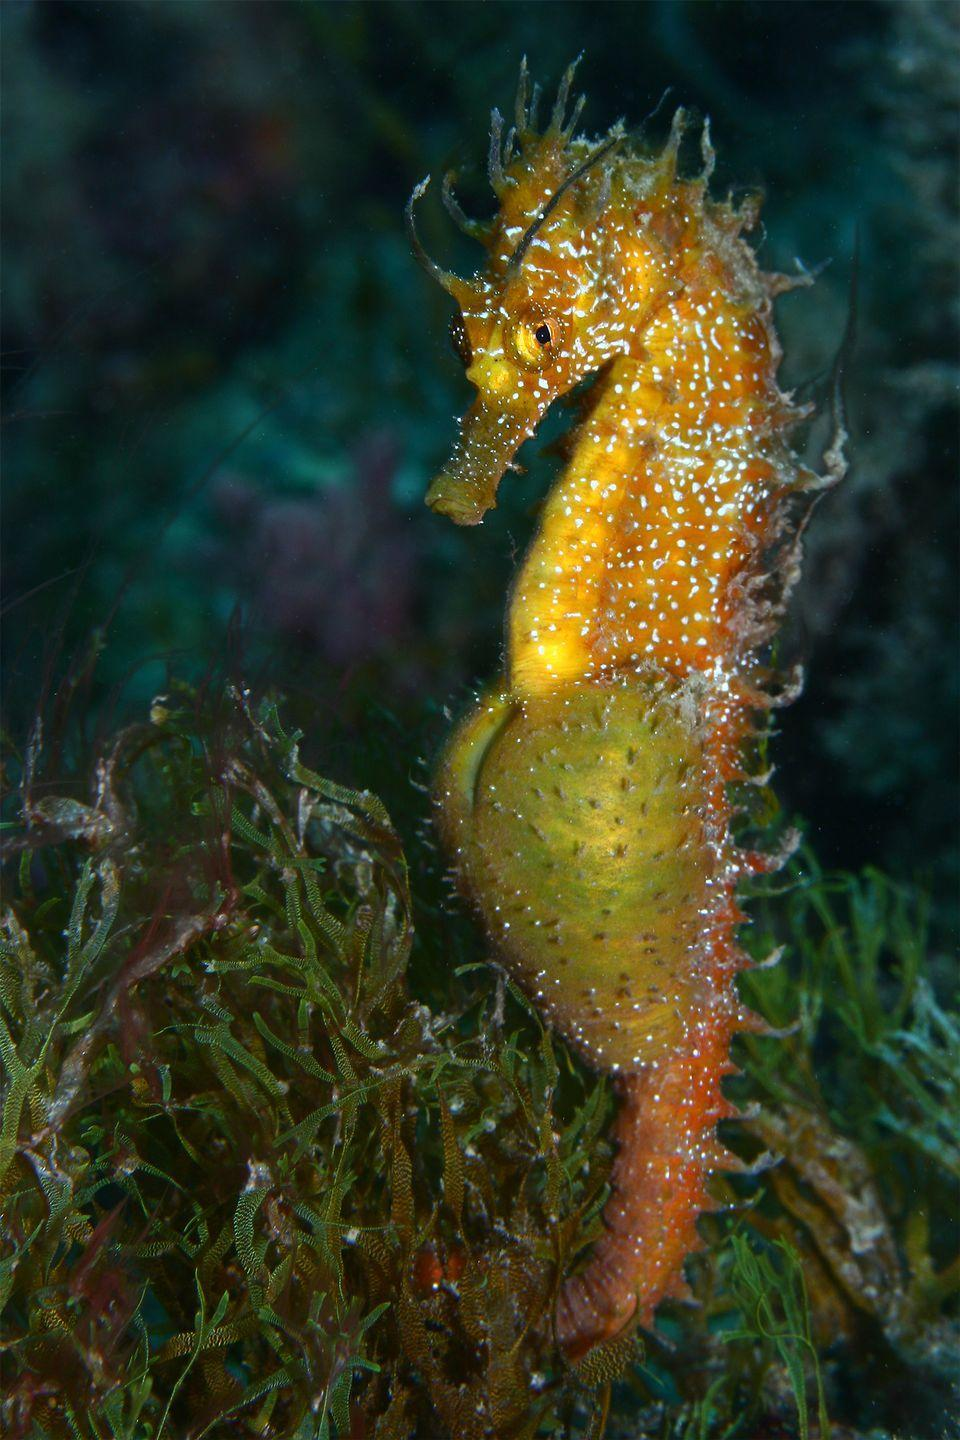 <p>You read that right. Male seahorses have pouches on their stomachs for carrying babies—as many as 2,000 at a time. The female deposits her eggs in the male's pouch, which results in him carrying a pregnancy that lasts from 10 to 25 days (depending on the species), and ultimately giving birth.</p>